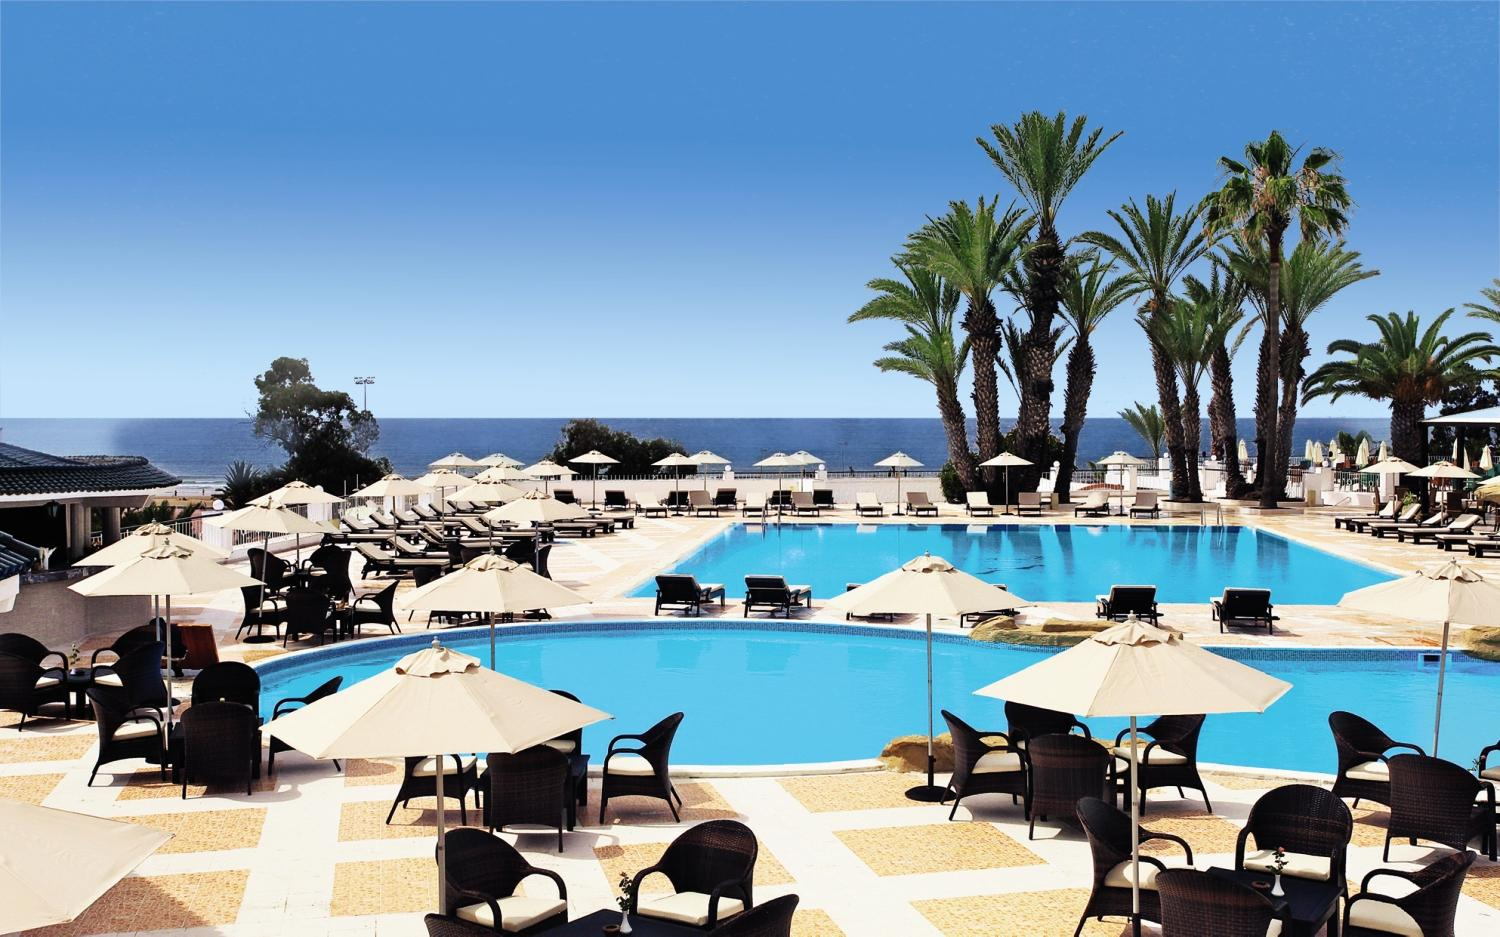 Royal Mirage Agadir